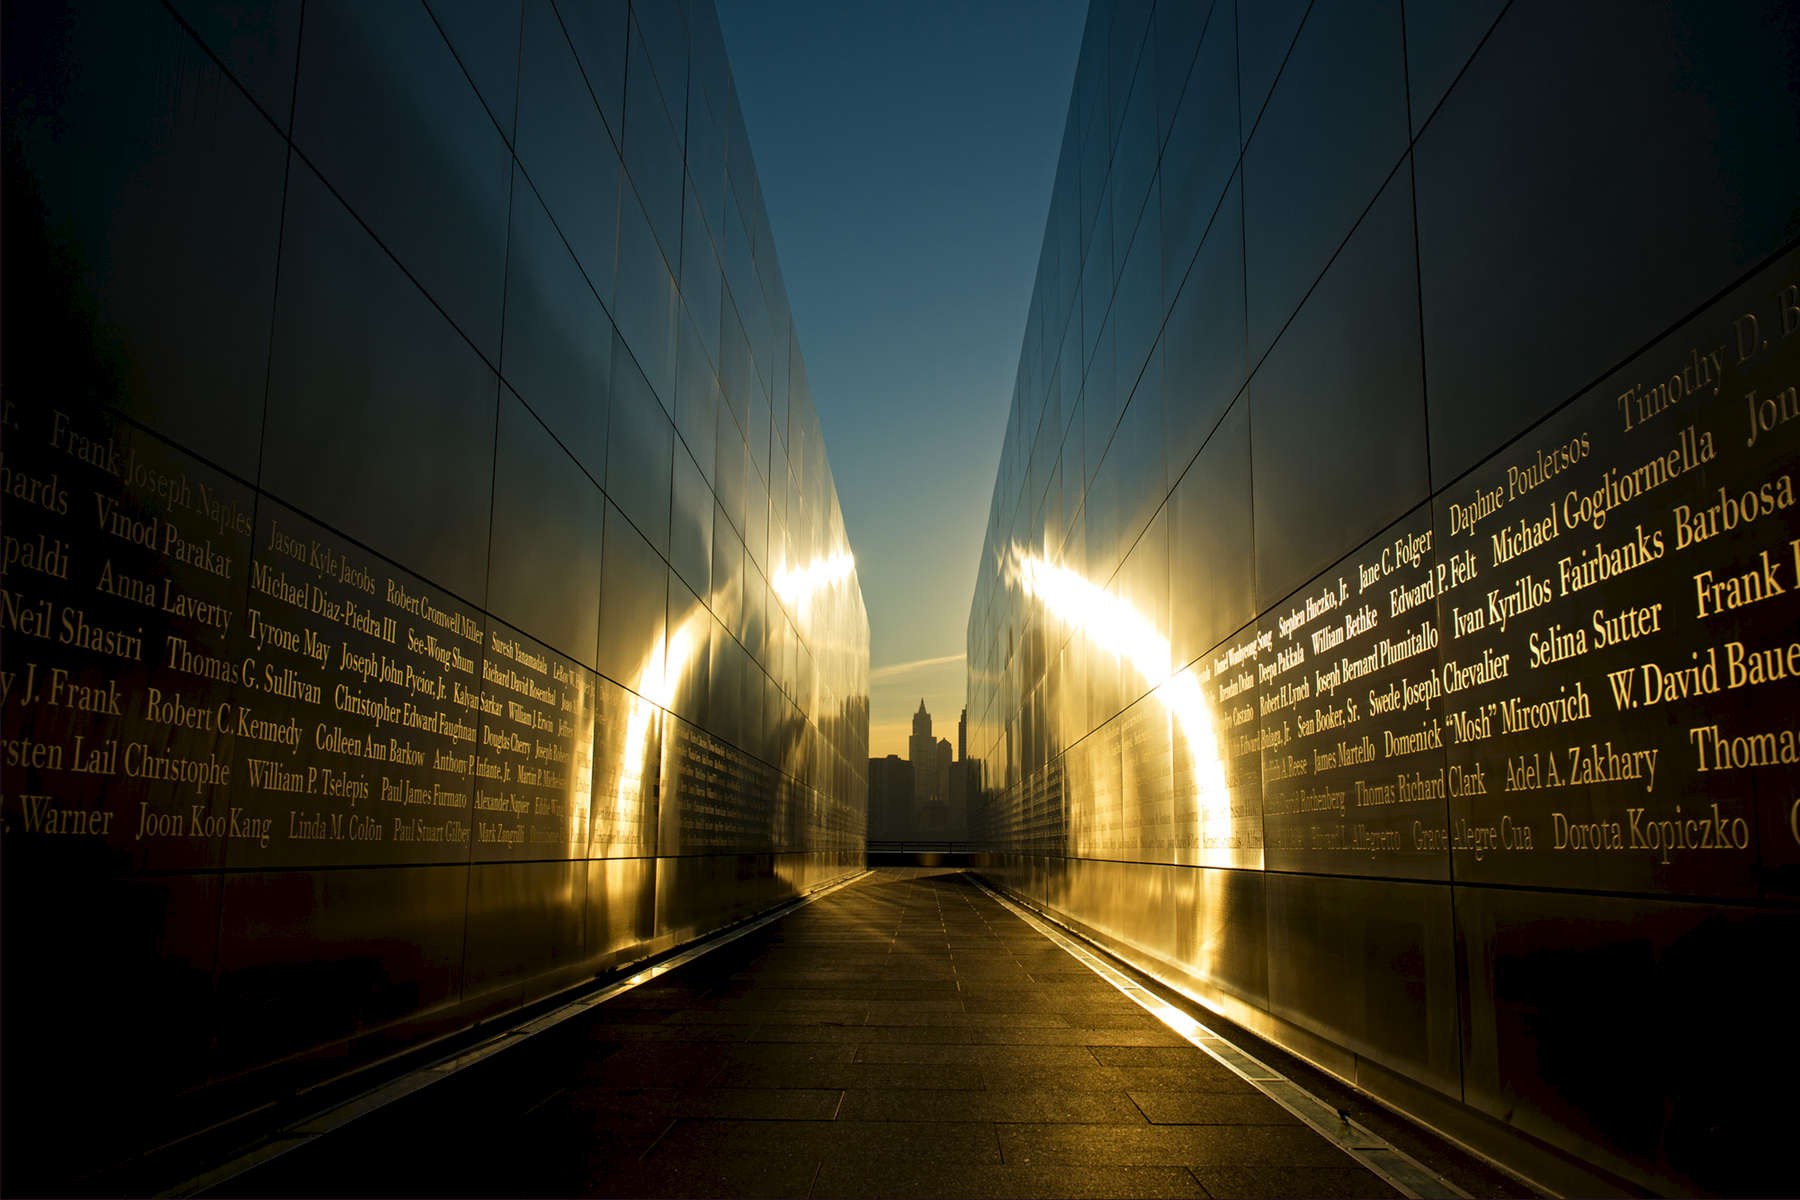 Liberty State Park, New Jersey, USA.Role + Responsibility: Designed by Jessica Jamroz and Frederic Schwartz, the Empty Sky Memorial design was shortlisted by a jury of professional peers and unanimously selected by the NJ 9/11 Memorial Foundation as the winning entry in an open international design competition. The memorial commemorates 749 people from the State of New Jersey who were killed during the September 11, 2001, attacks.As Memorial designer and Director of design and construction of the memorial, Jessica imagined and orchestrated all aspects of the memorial design and its construction from conception through fruition. The project has been honored by numerous awards (including, among others, the 2012 Associated General Construction of America Alliant Build America Award; 2012 Faith & Form Sacred Landscape Award; 2012 Global SEGD Design Honor Award; 2005 NY NOW AIA People's Choice Award and 2004 New Jersey AIA Unbuilt Project Honor Award). The Memorial was dedicated on the tenth anniversary of September 11, 2011, with six former Governors and then current Governor Chris Christie. The memorial went through three phases of construction over 5 years with a total construction budget of $12.6 million. The final and largest phase of construction—the construction of the Memorial Walls—went through approvals, shop drawings, fabrication, and erection (from bid to construction) in a short 9-month time period. Not only was construction kept on schedule (hard deadline of the 10th anniversary of 9/11), and the quality kept in line with the design vision, but ultimately the project incurred construction change orders less than 1% of the total construction budget.  Owner: State of New JerseyConstruction Cost: $12,600,000Total Area: 2.6 Acres	Designer:	 Jessica Jamroz and Frederic Schwartz Architect:	 Frederic Schwartz ArchitectsContractor: Hall ConstructionMetal Fabrication: Crystal MetalworksStructural Engineer: ARUPSite / Civil / Geotech / Enviornmental: LANGAN Landscape Architect: Arnold AssociatesLighting Designer: Fisher Marantz Stone Electrical Engineer: Robert Derector AssociatesInteractive Designer: Tender Creative / VSA PartnersGraphic Designer: Alexander Isley Inc.Metallurgy Consultant: Cathrine Houska Cost Consultant: TURNER Construction; VJ Associates